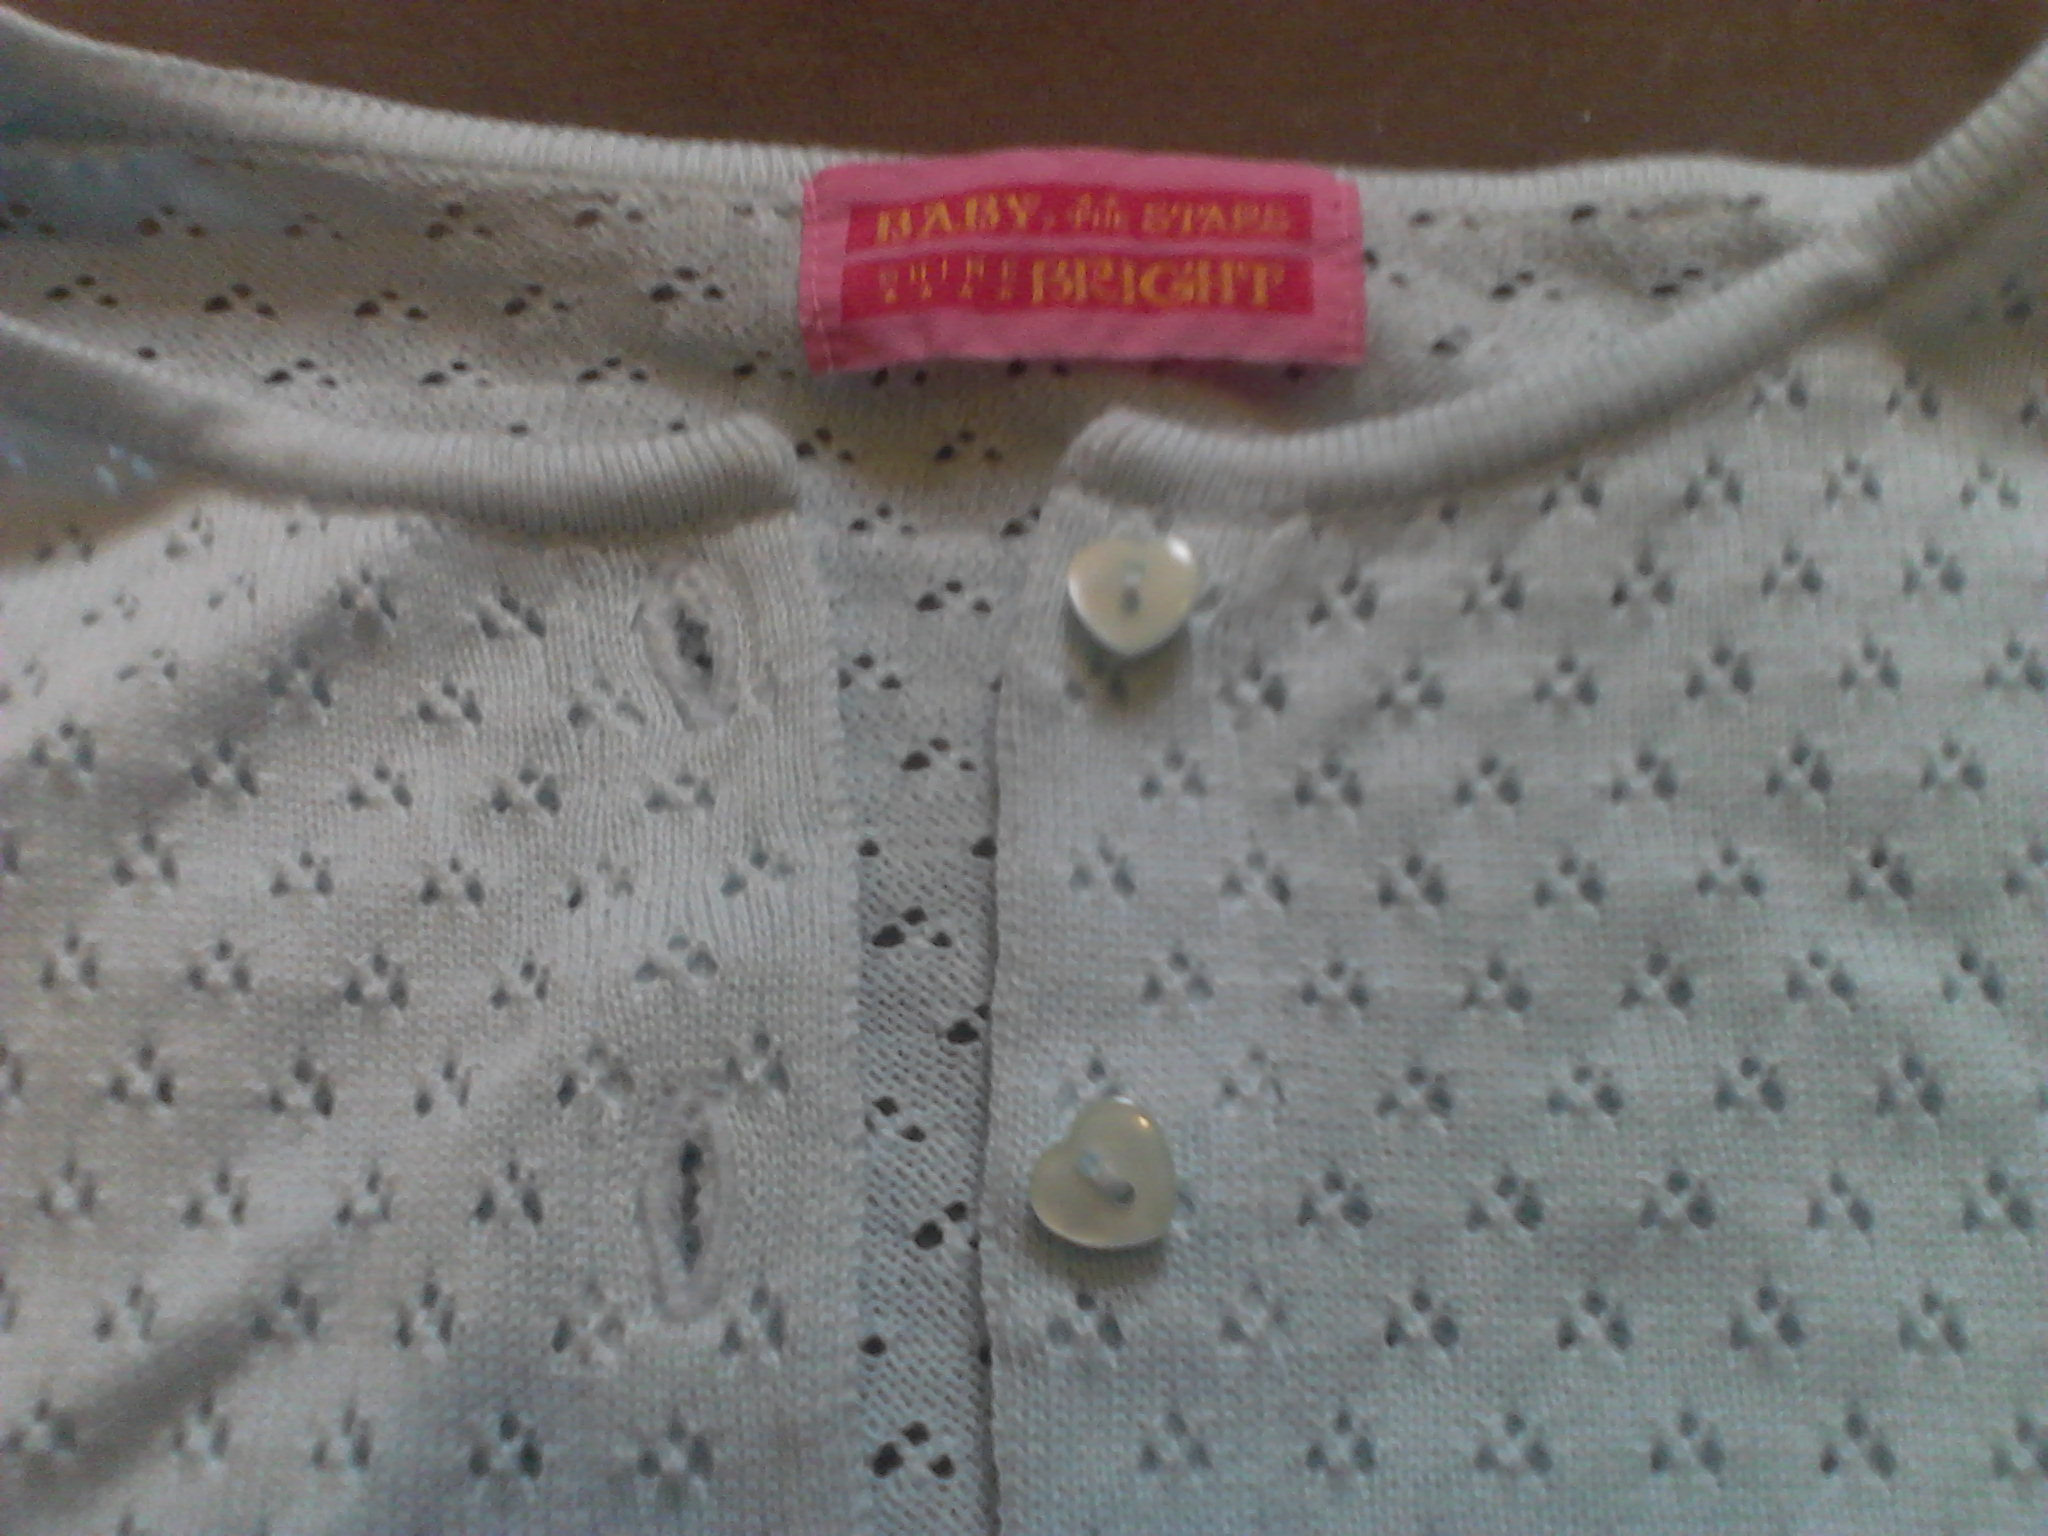 cardigan label